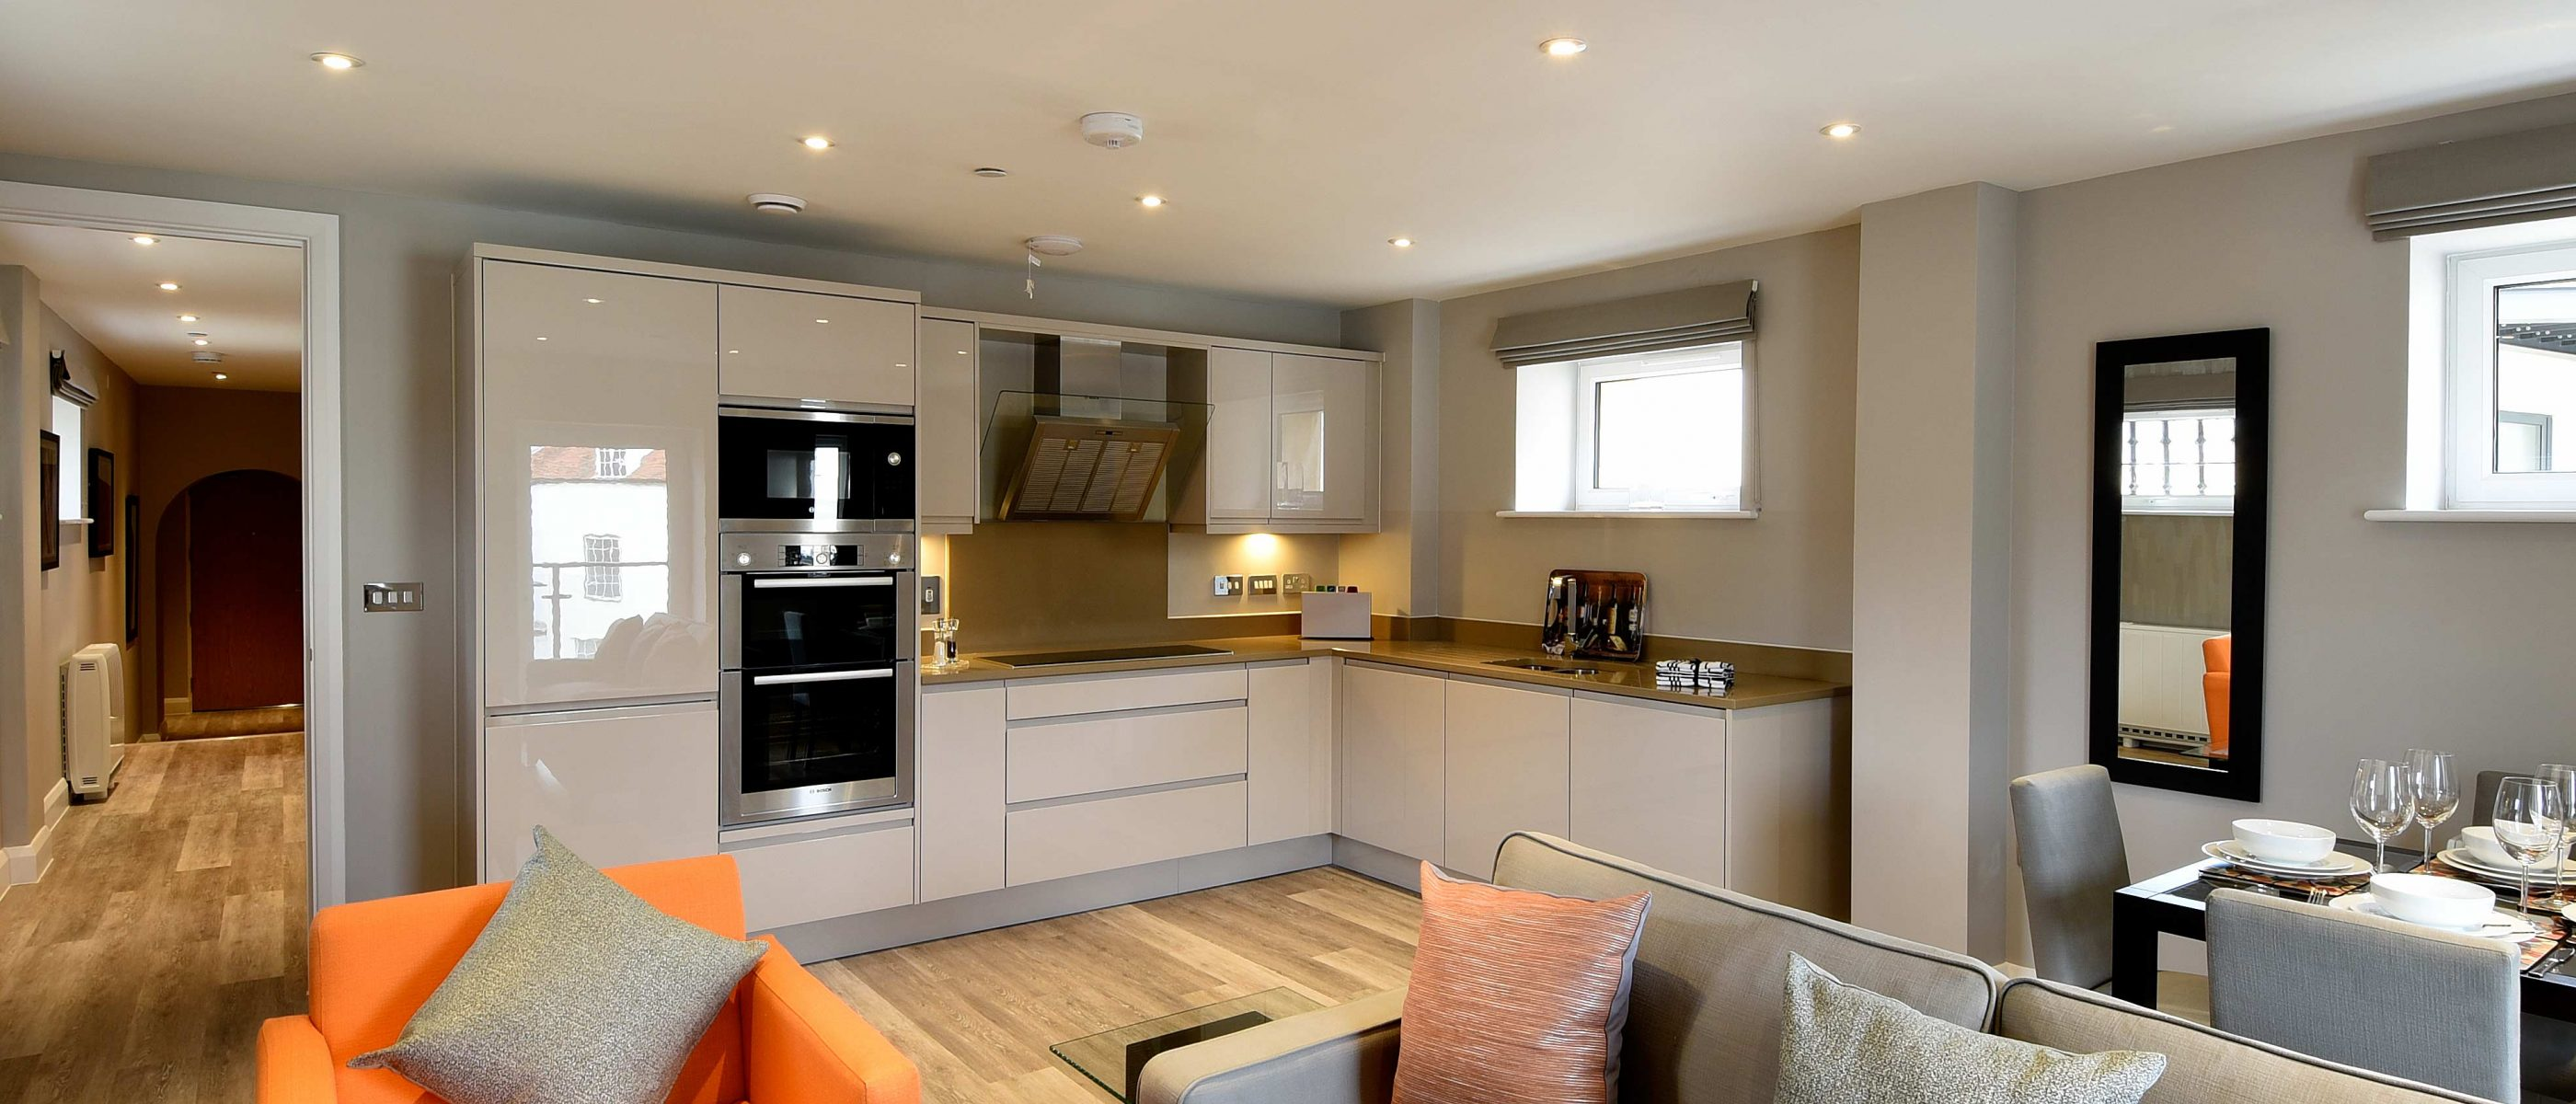 The living area in the Daniel Harris Suite: a one bedroom luxury serviced apartment at The Old Gaol, by the River Thames in Abingdon, near Oxford. Ideal accommodation for corporate or holiday short lets